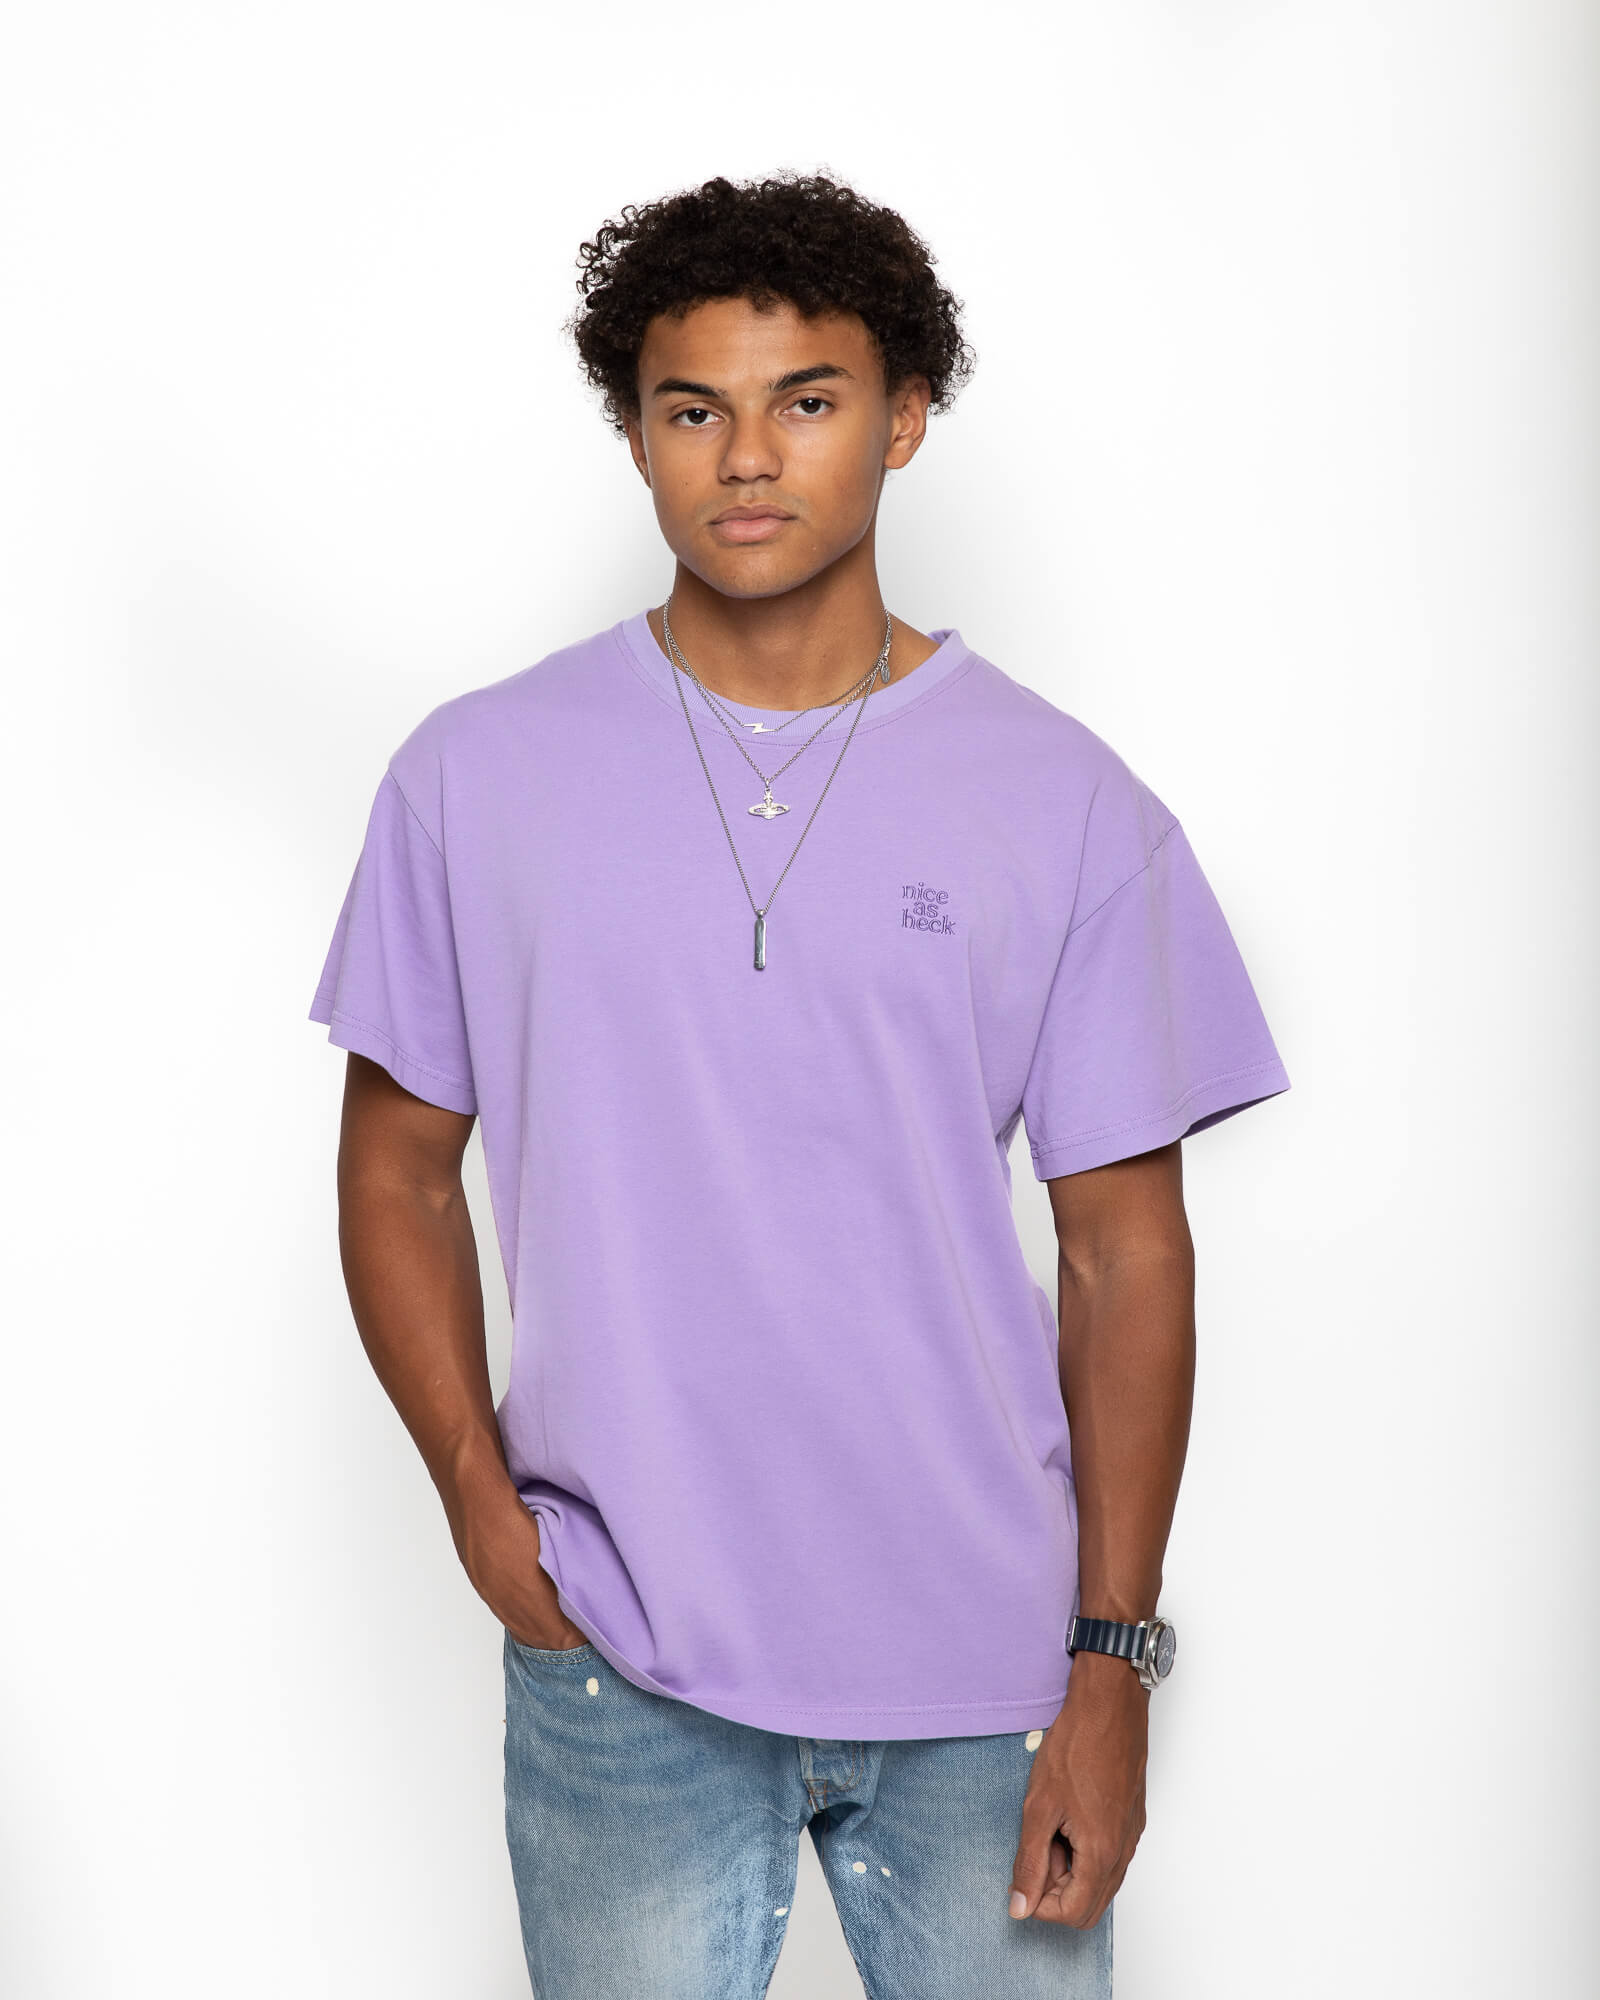 Male model wearing purple weekend tee with right hand in his pocket